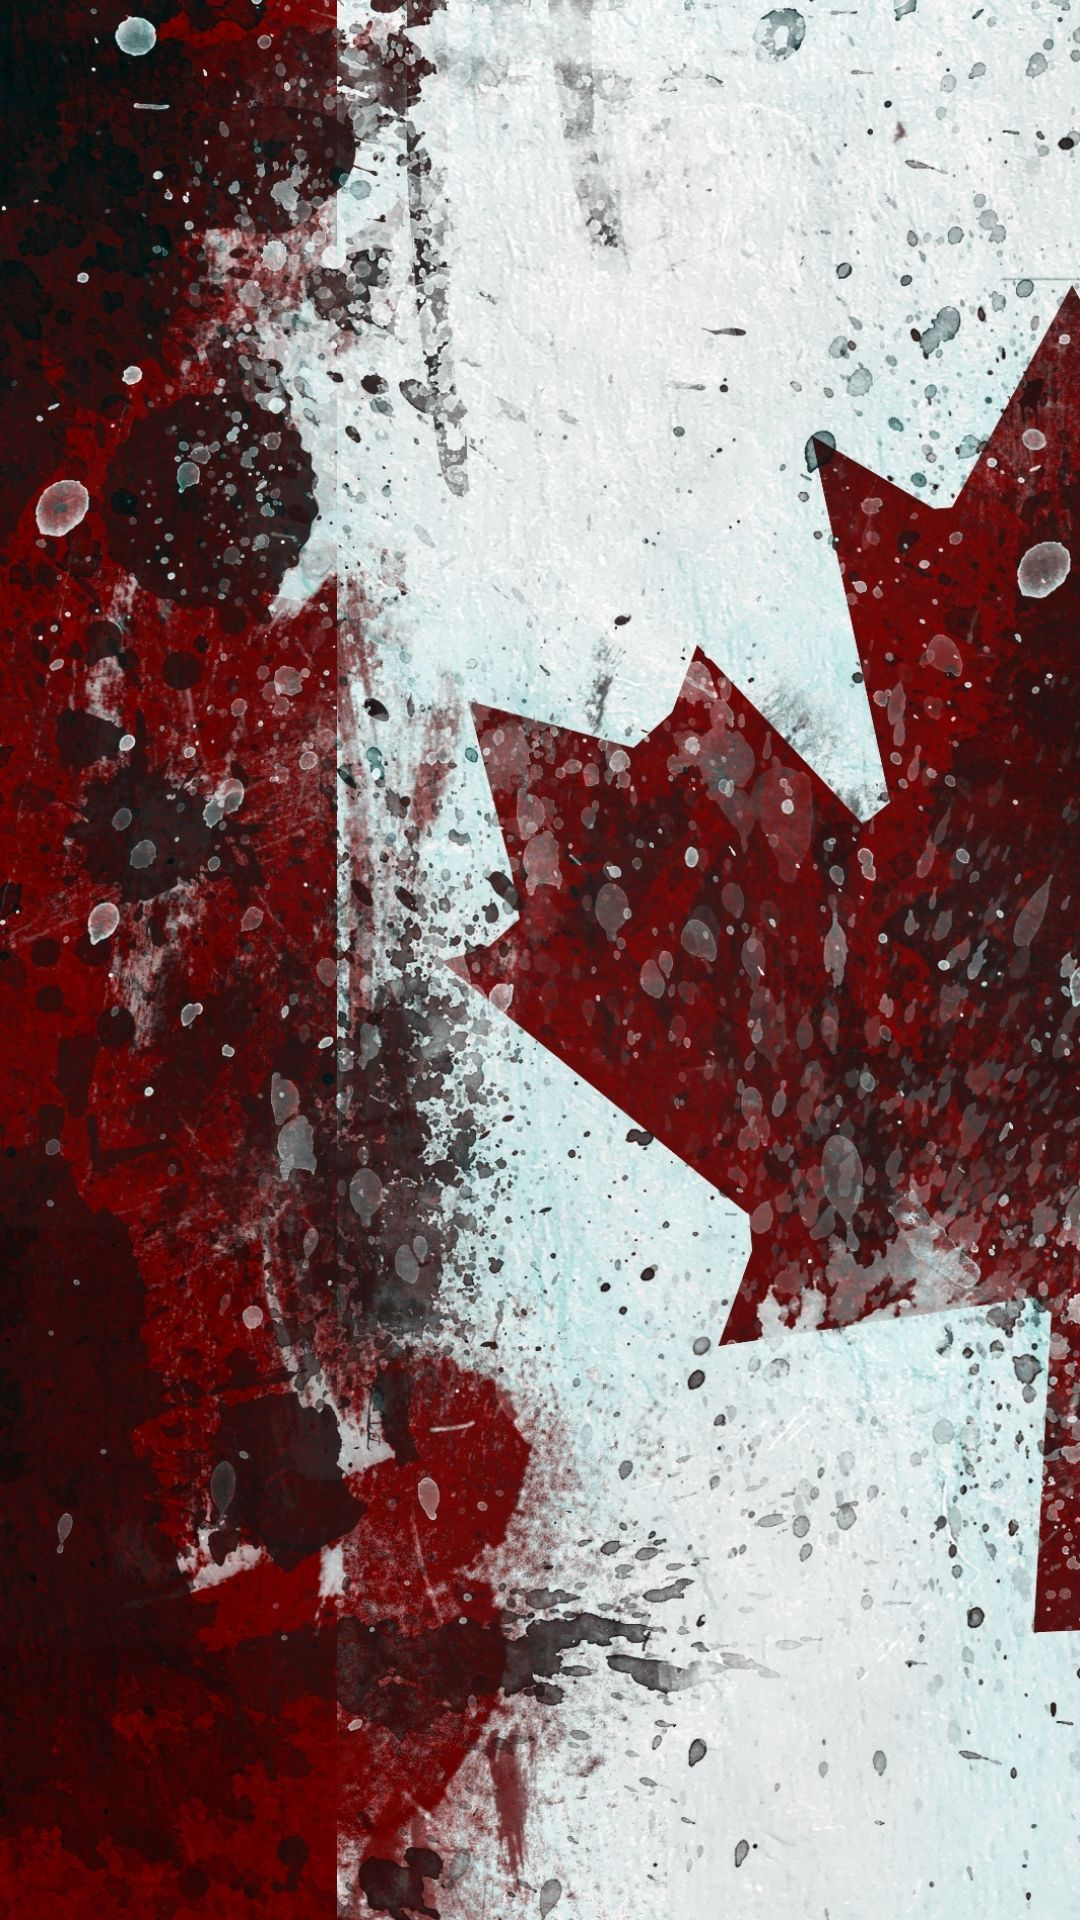 Canada wallpapers pack download flgx db wallpapers - Canada flag wallpaper hd for iphone ...